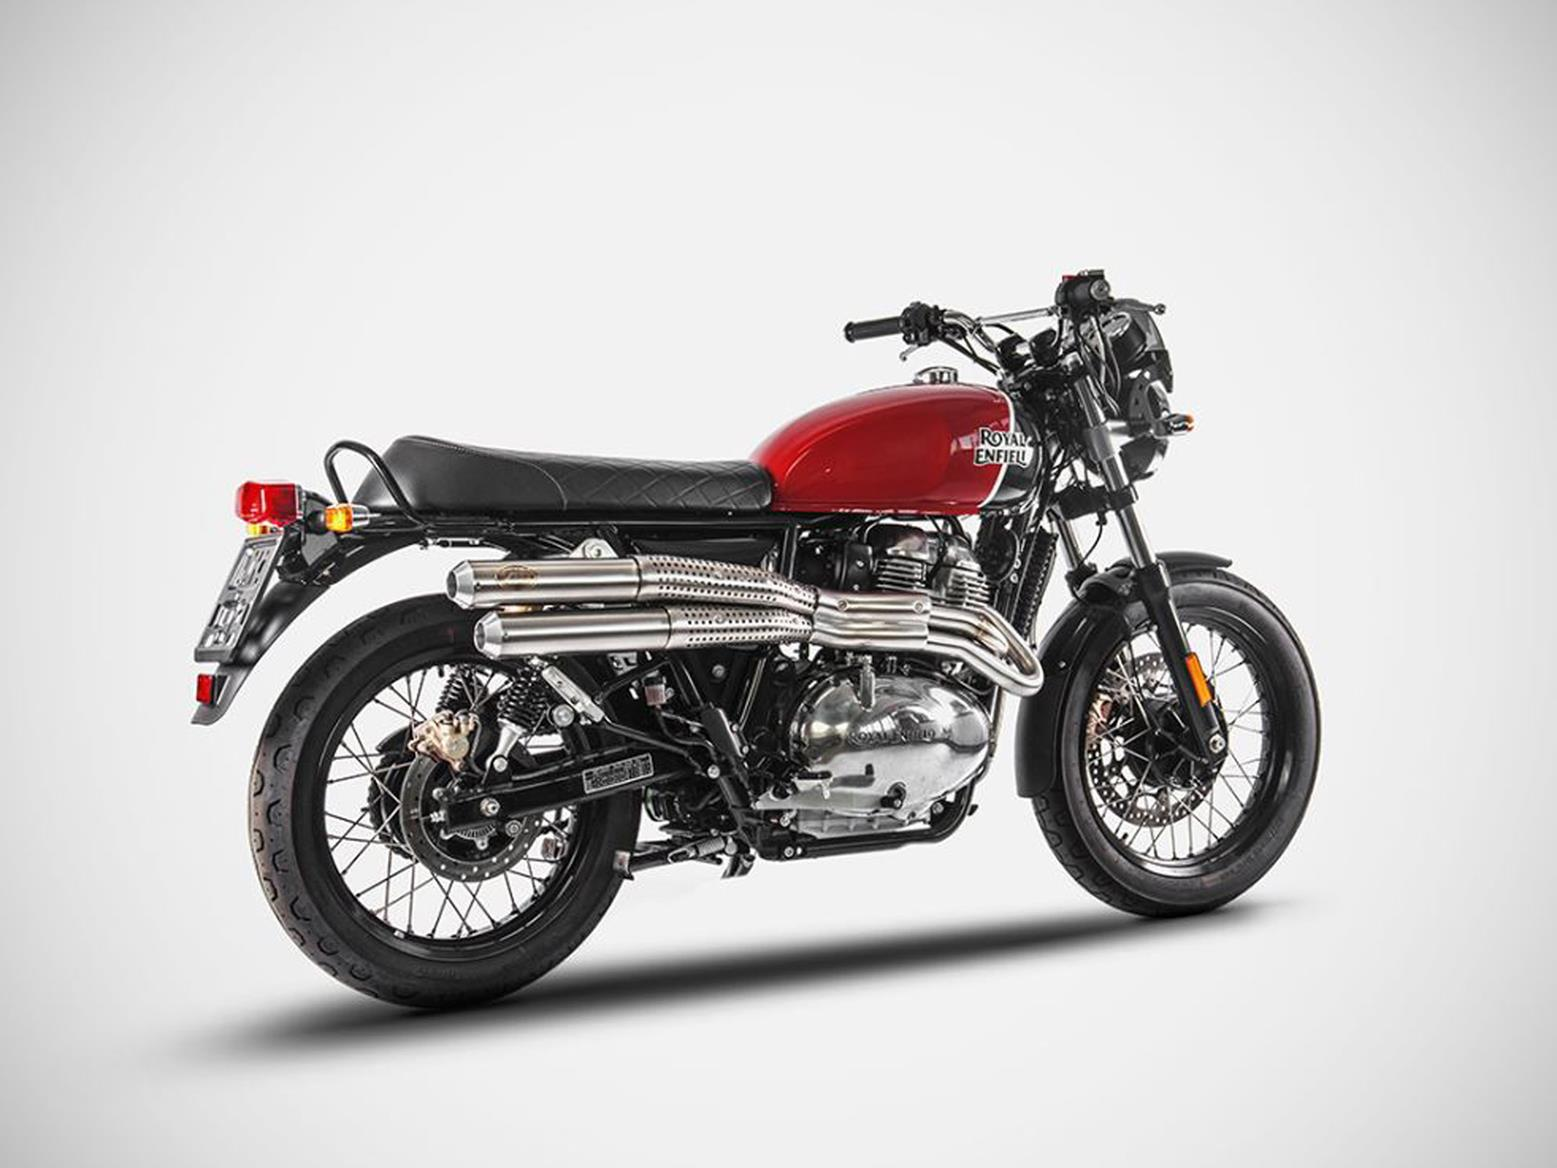 Royal Enfield Continental GT with Zard flat-track pipesRoyal Enfield Continental GT with Zard flat-track pipes